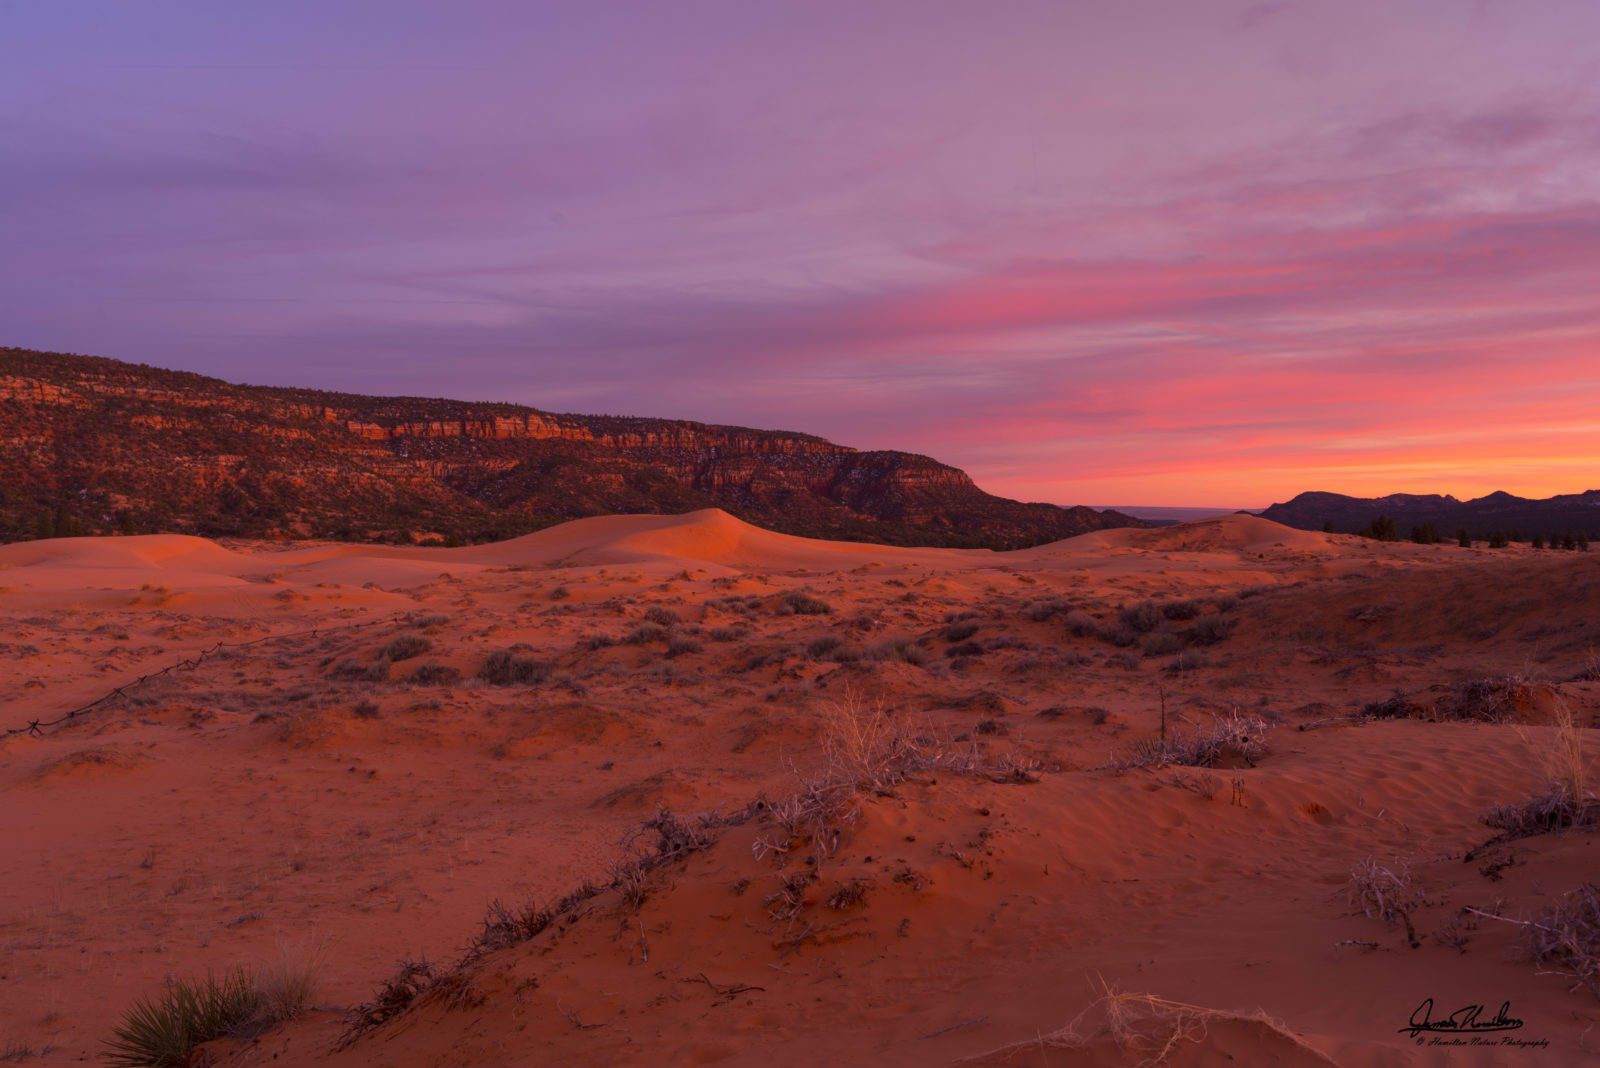 Sunset Light on Coral Pink Sand Dunes